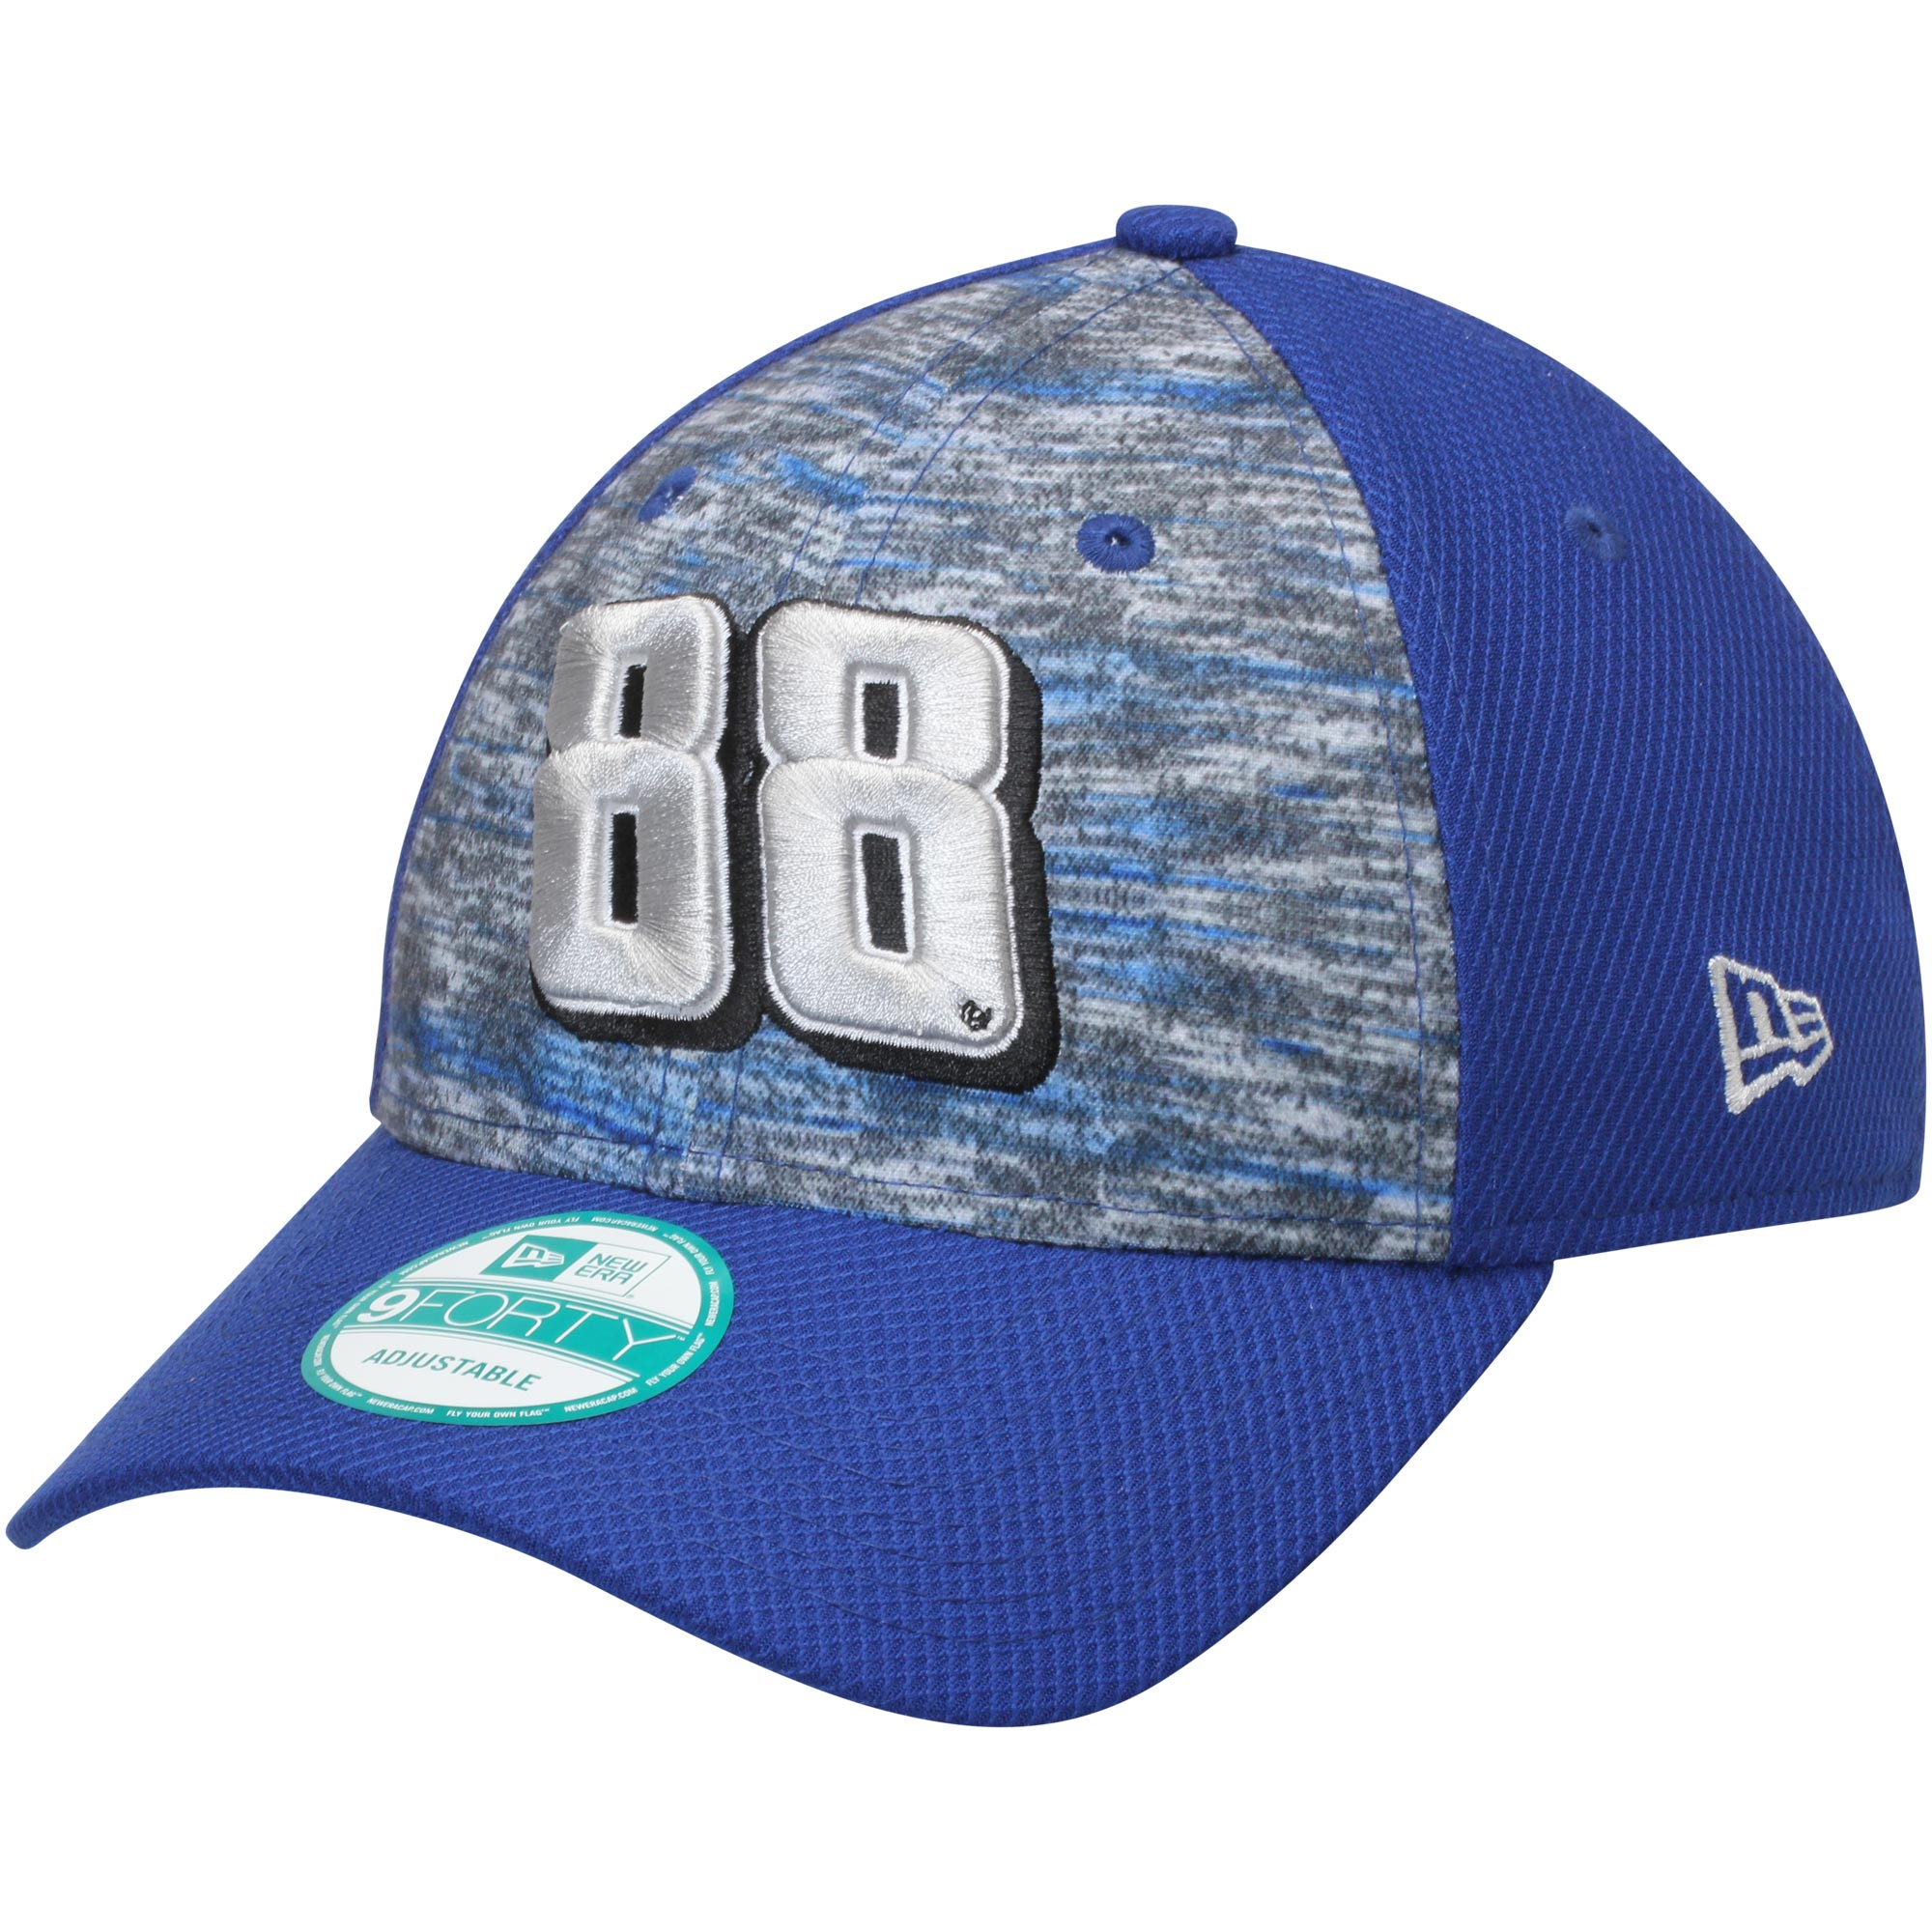 Dale Earnhardt Jr. New Era Sub Mixer 9FORTY Adjustable Hat - Gray/Royal - OSFA